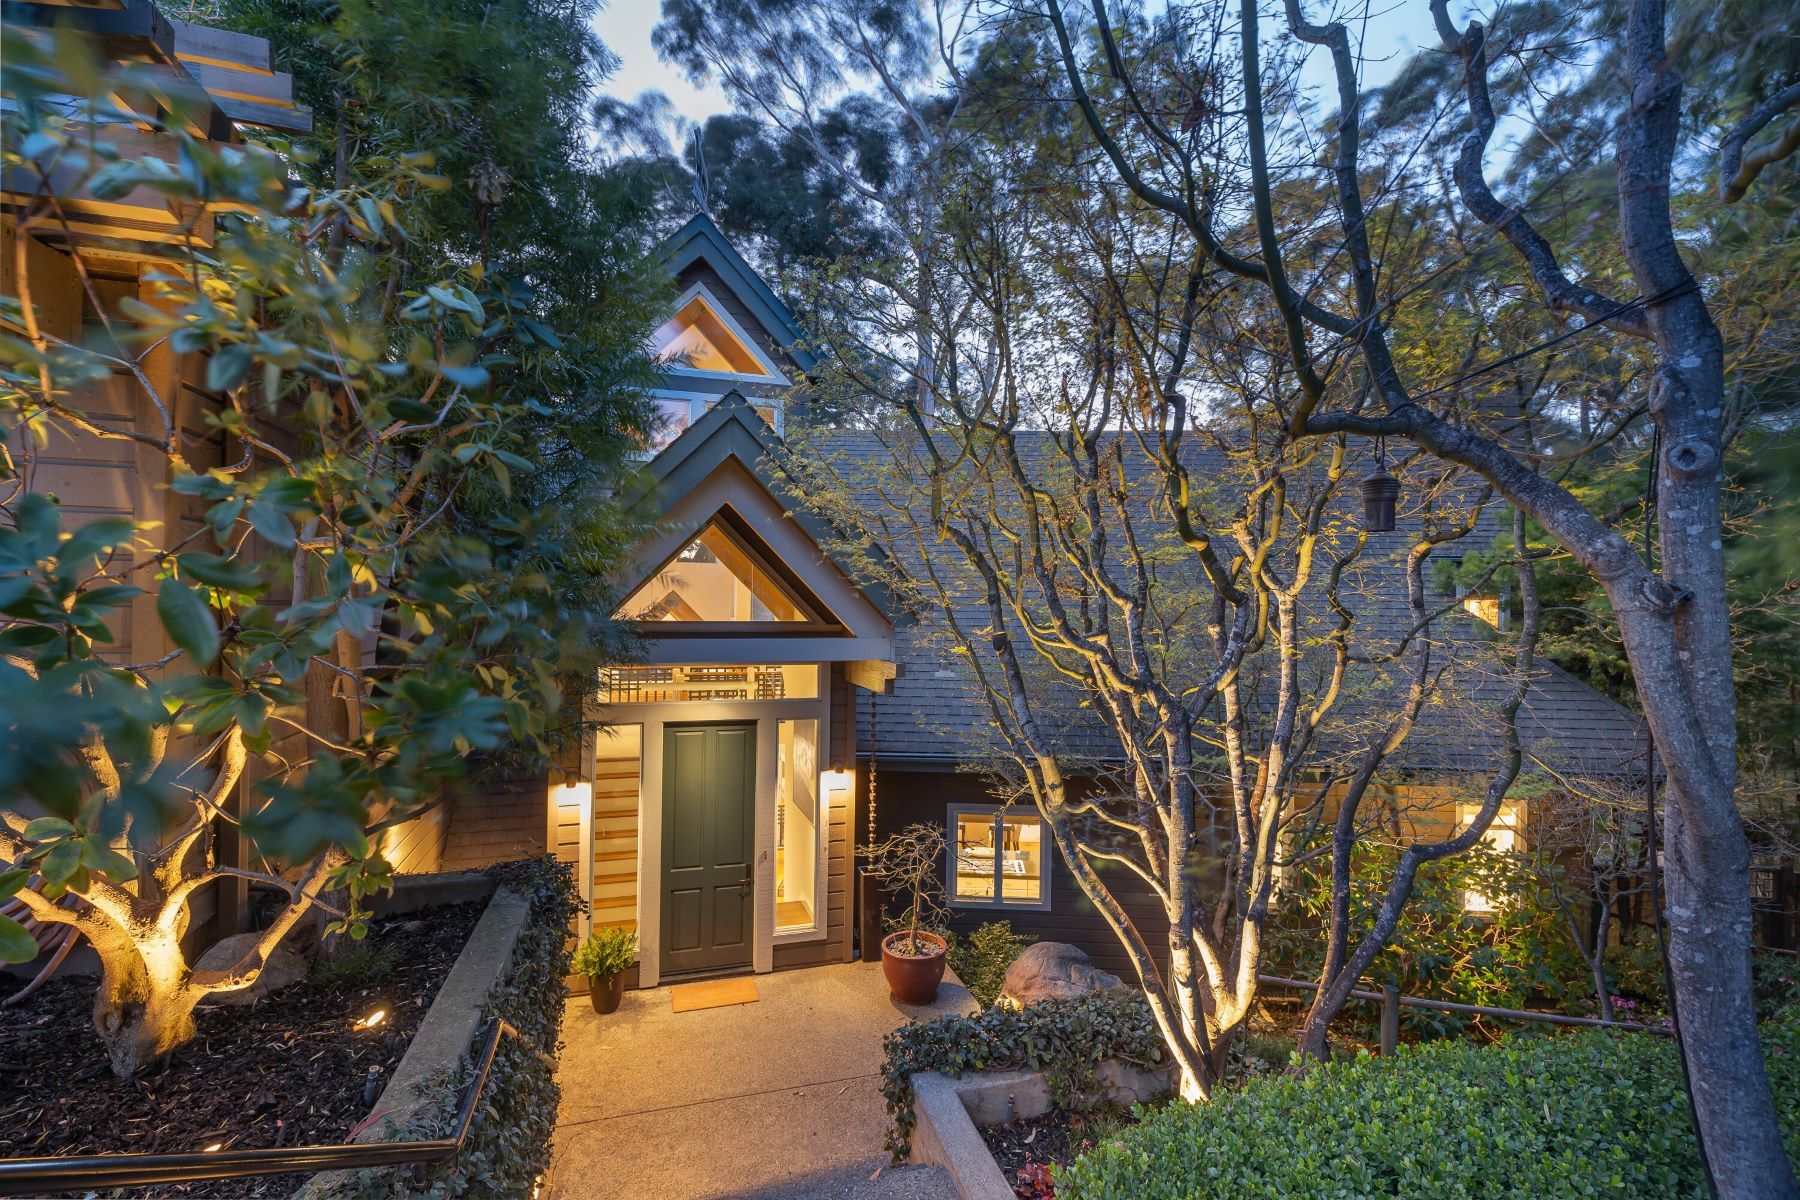 Single Family Homes for Sale at Custom Open-Timber Home in Gated Community 67 Marin Bay Park Court San Rafael, California 94901 United States